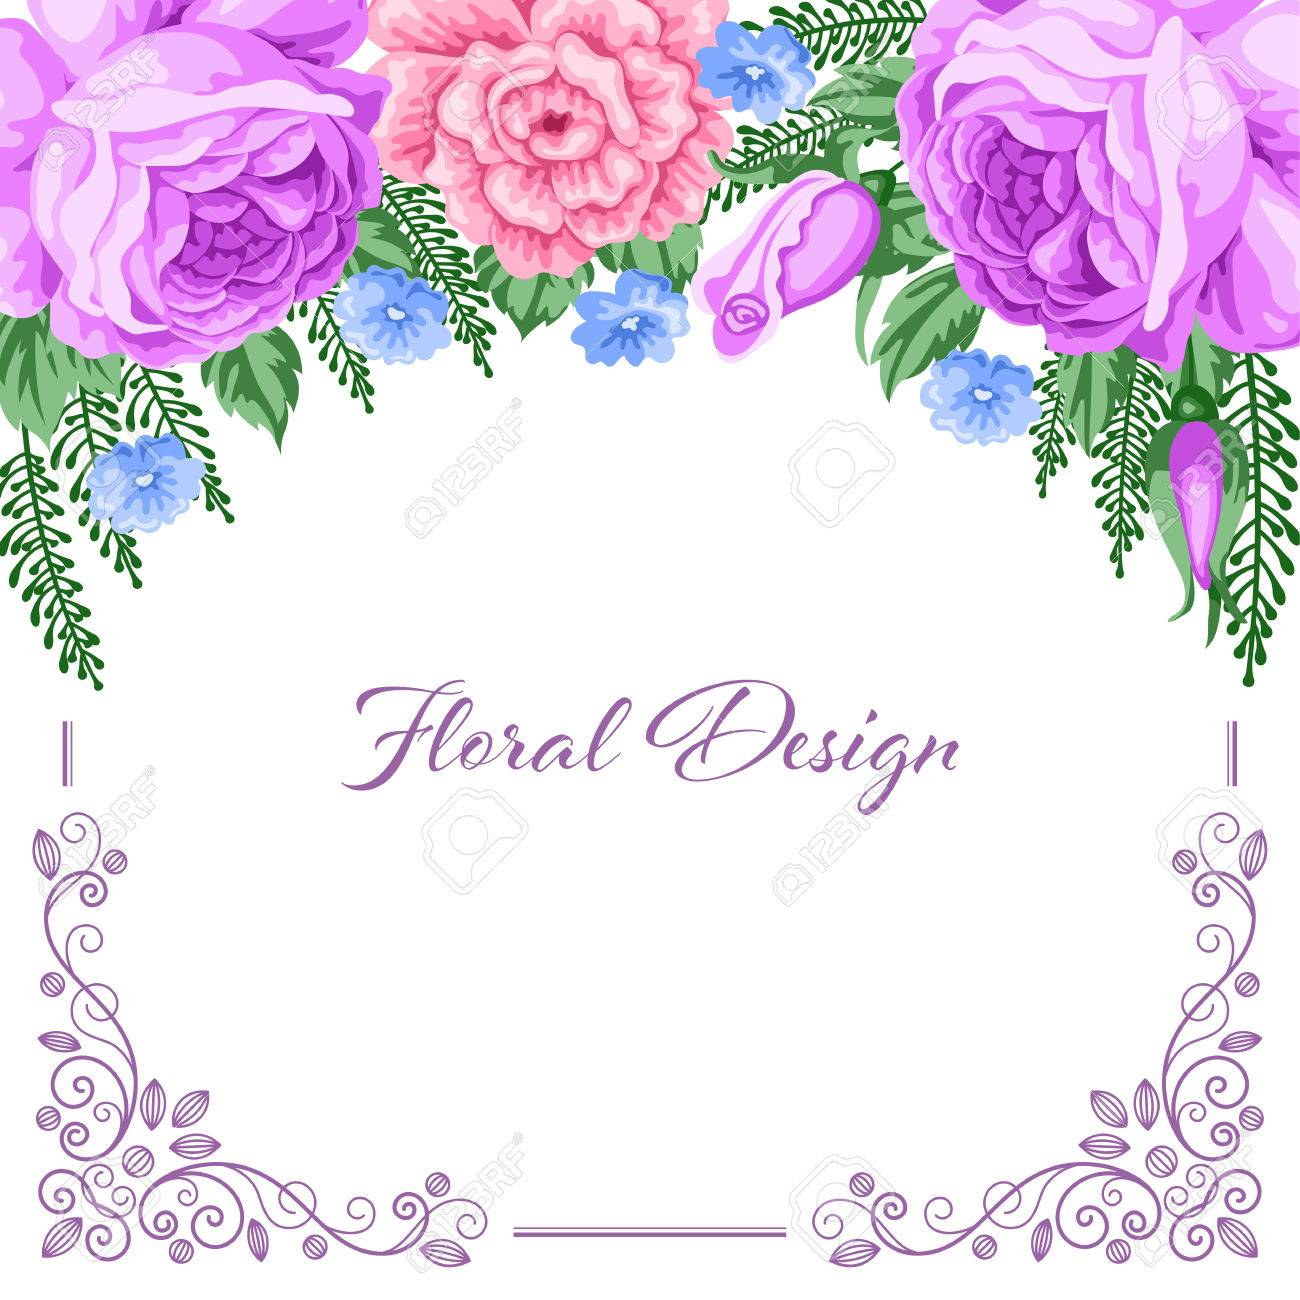 background with flowers and lace frame for wedding invitation save the date or bridal shower